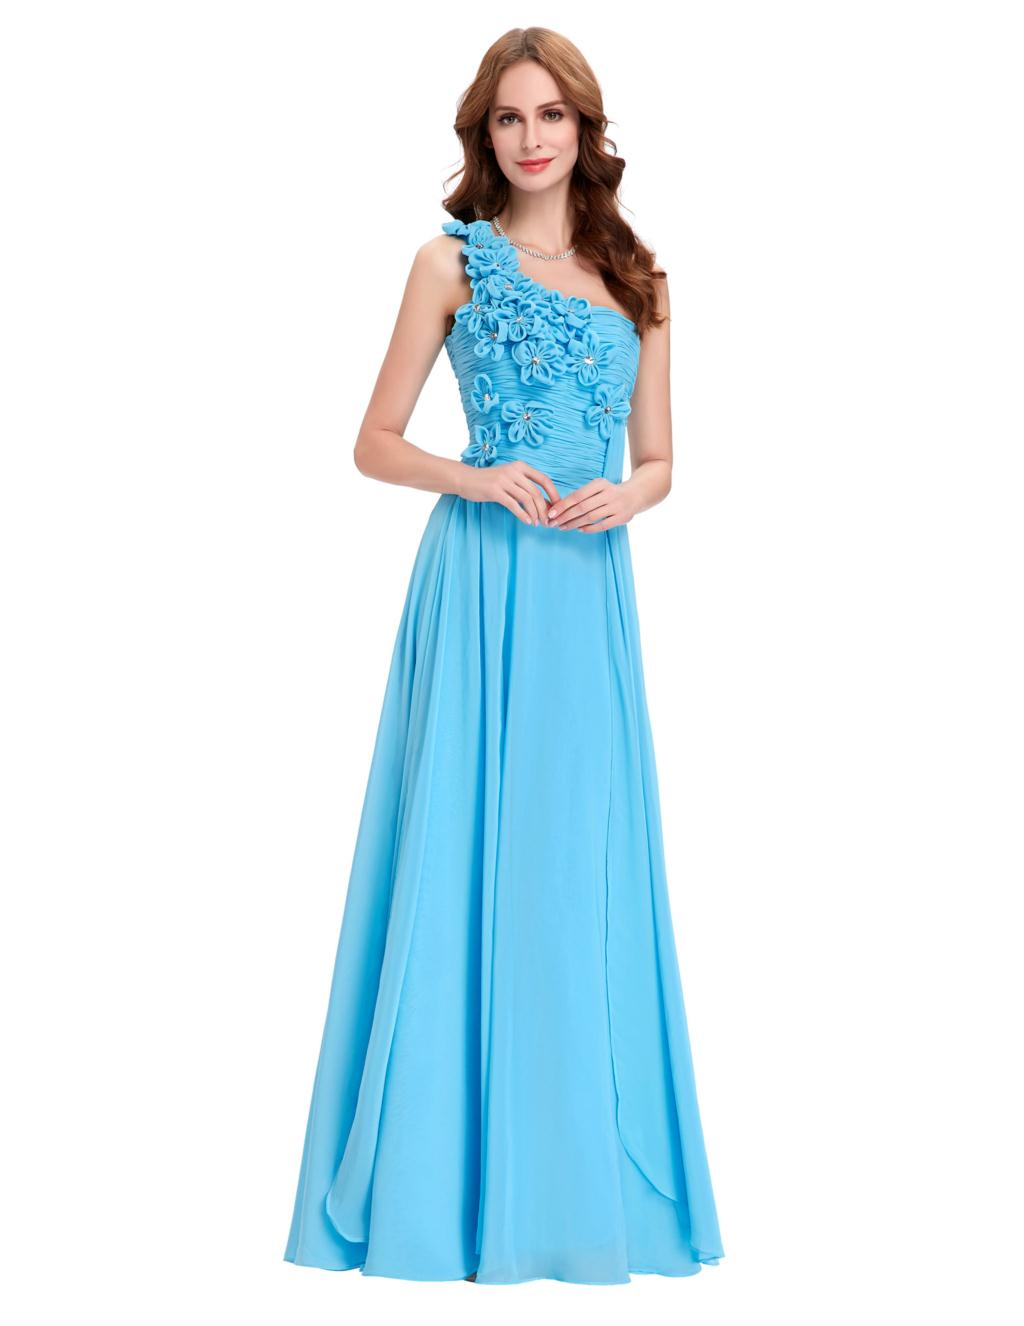 Light bridesmaid dresses discount wedding dresses for Wedding dresses discount online